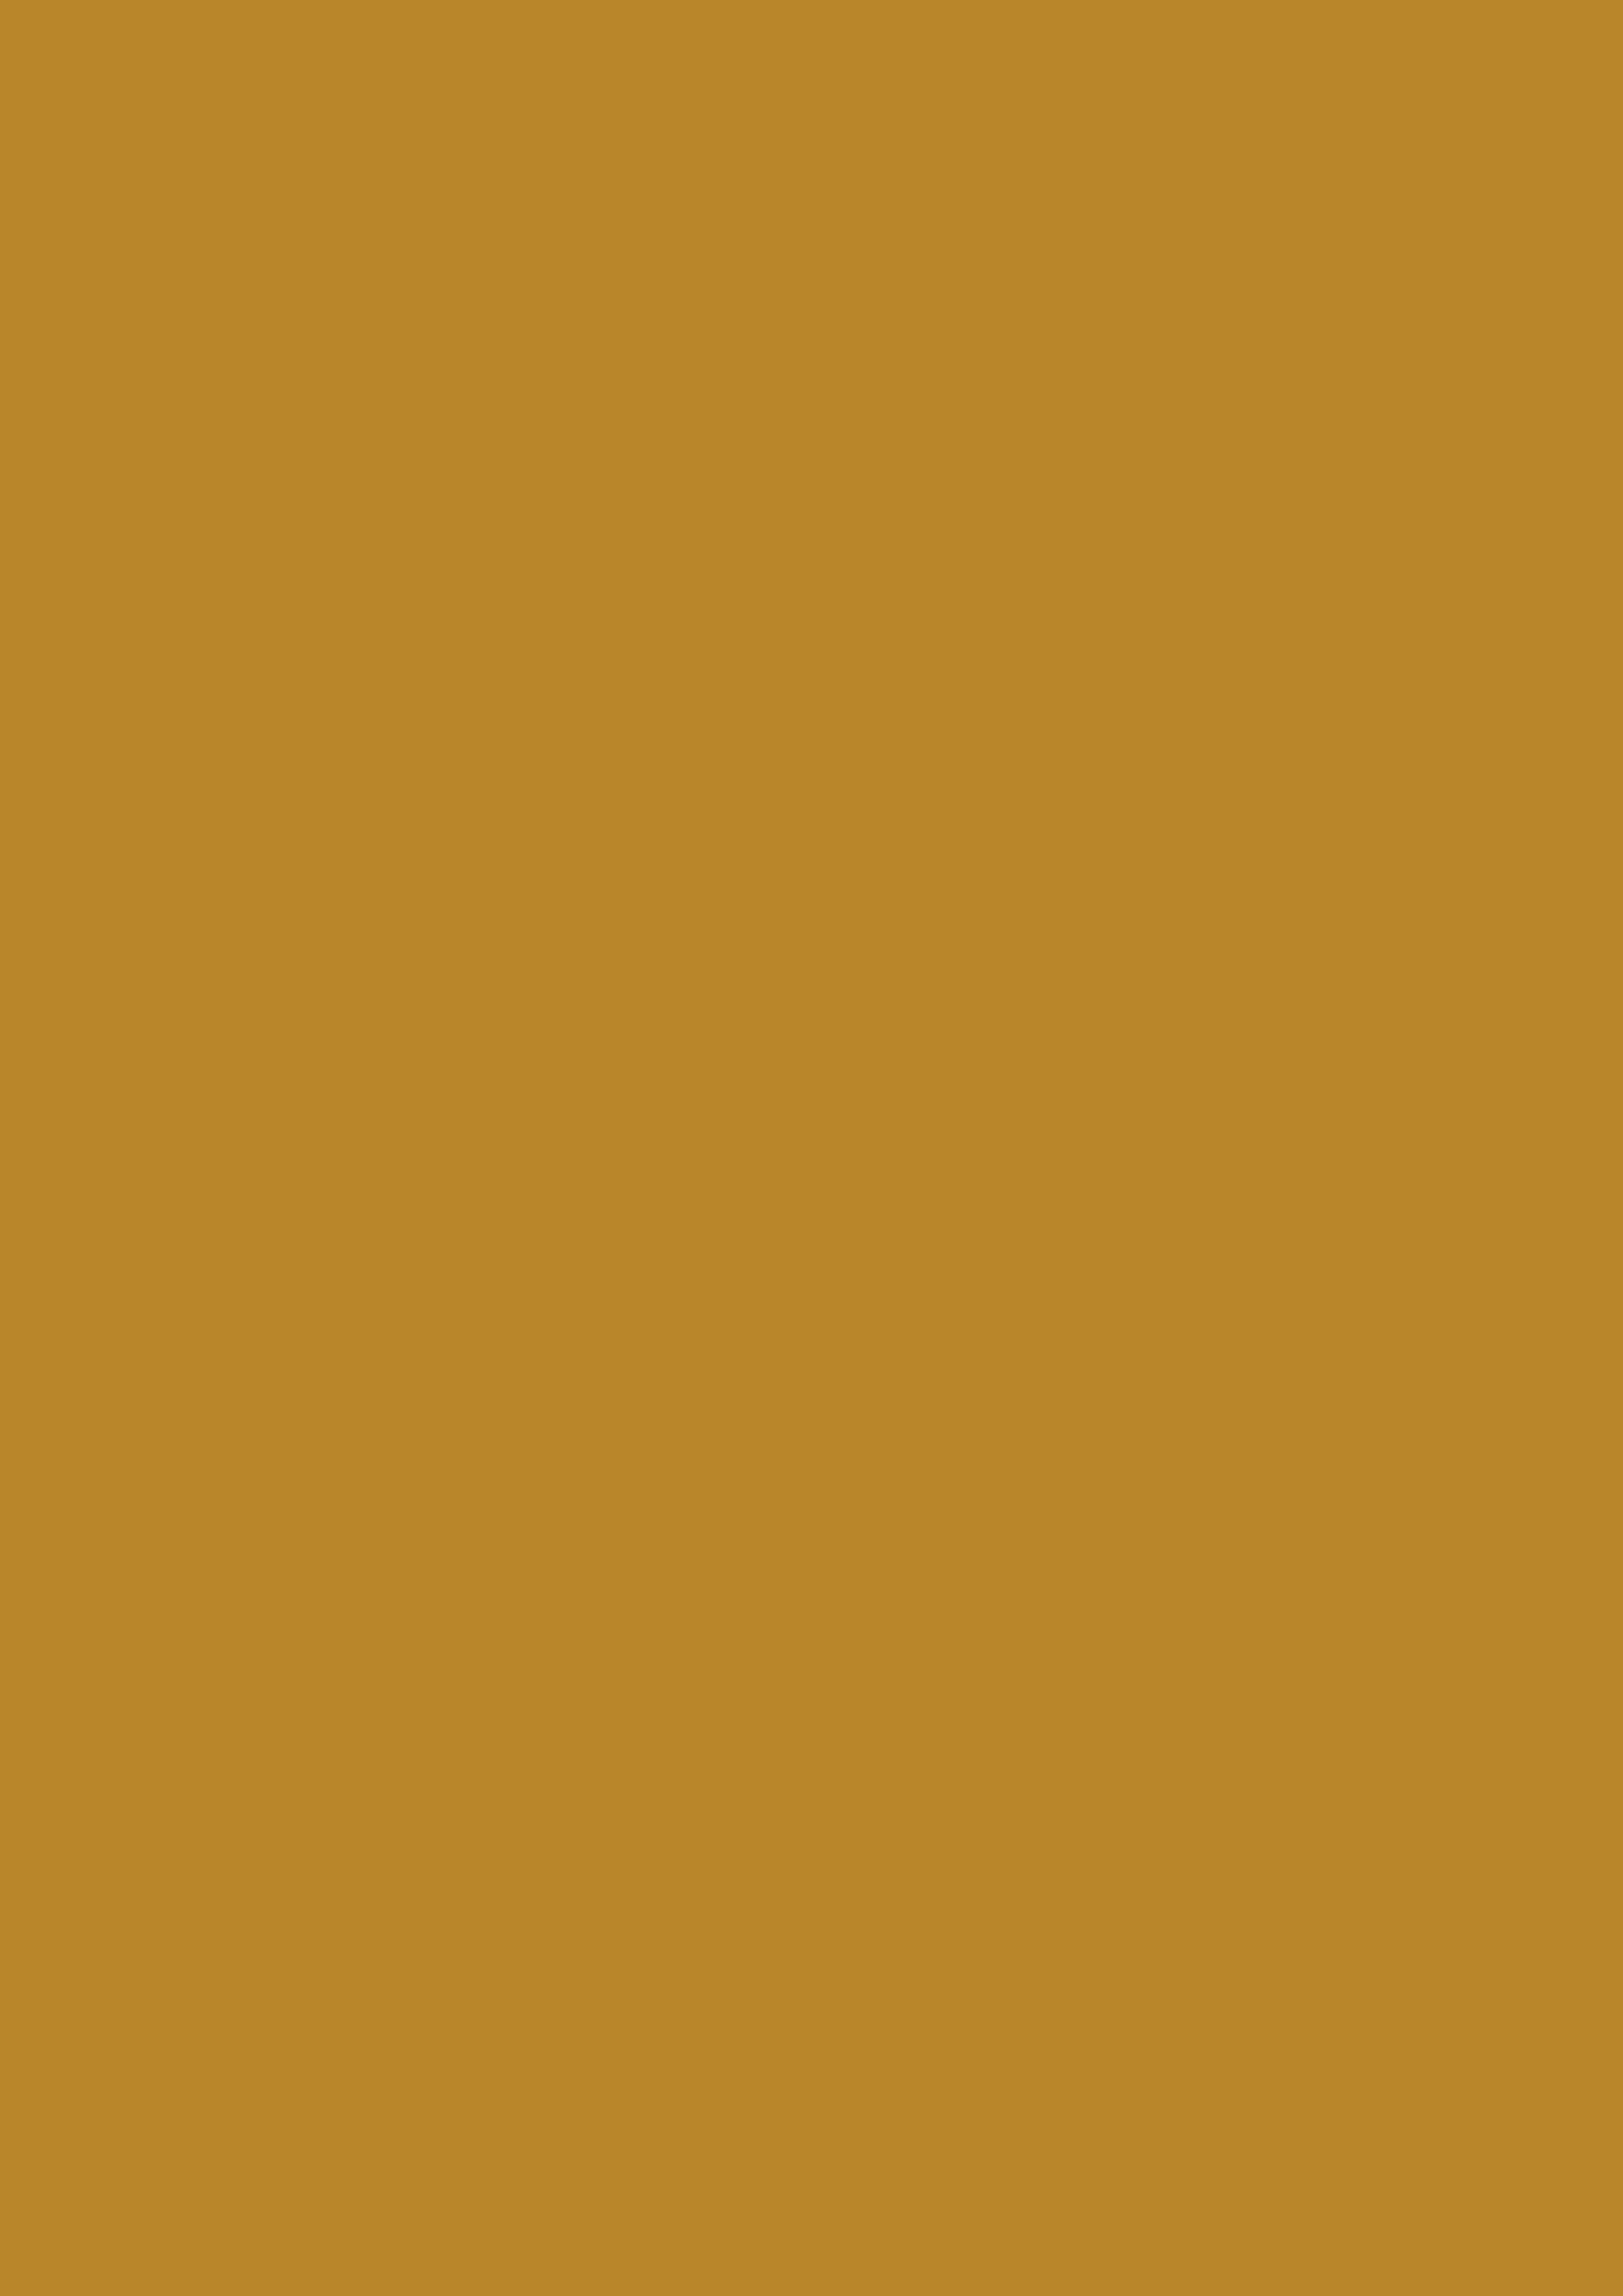 2480x3508 University Of California Gold Solid Color Background